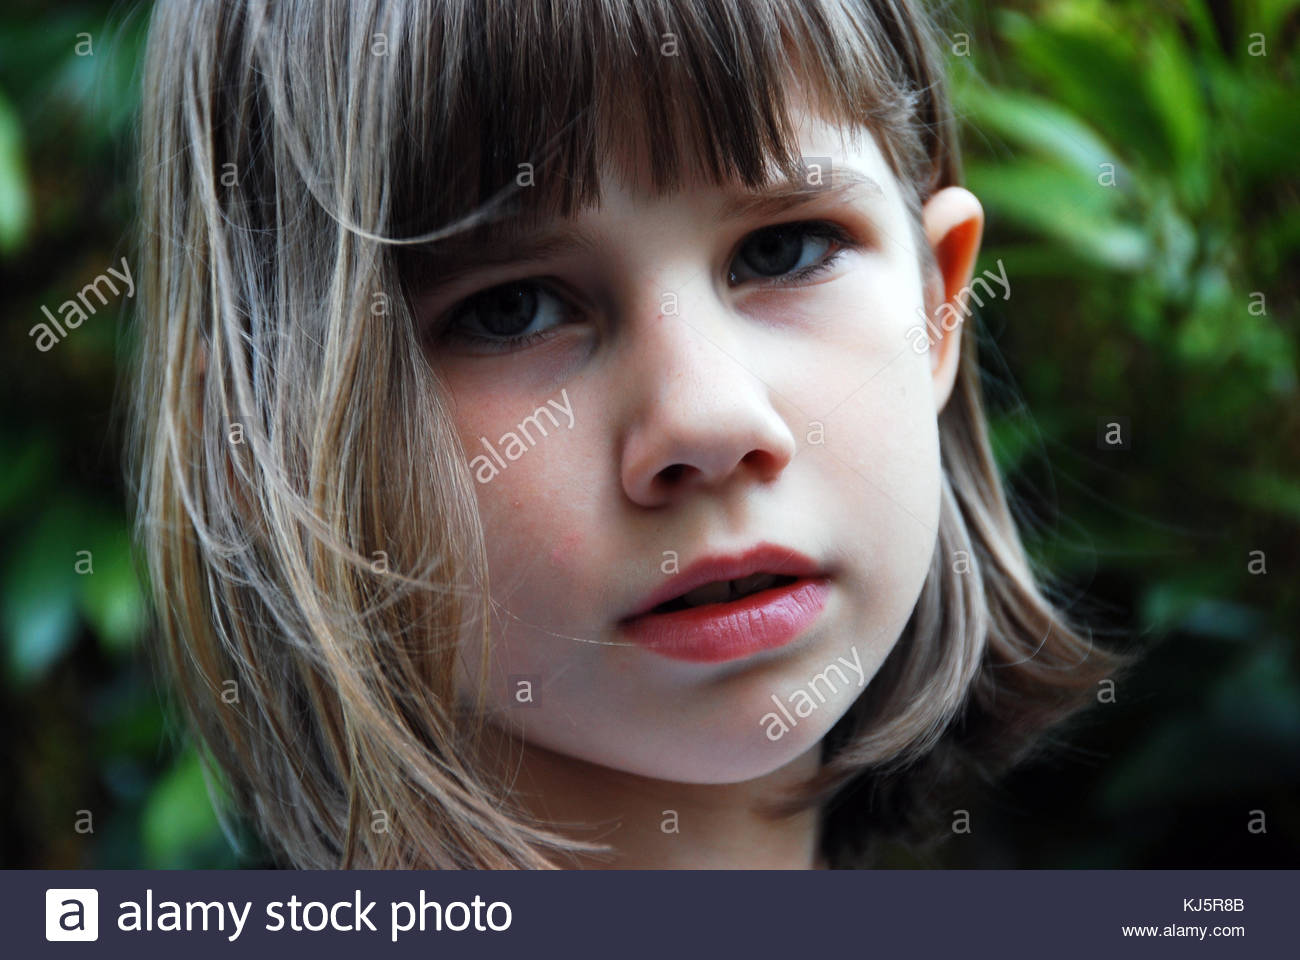 child's face with green background - Stock Image